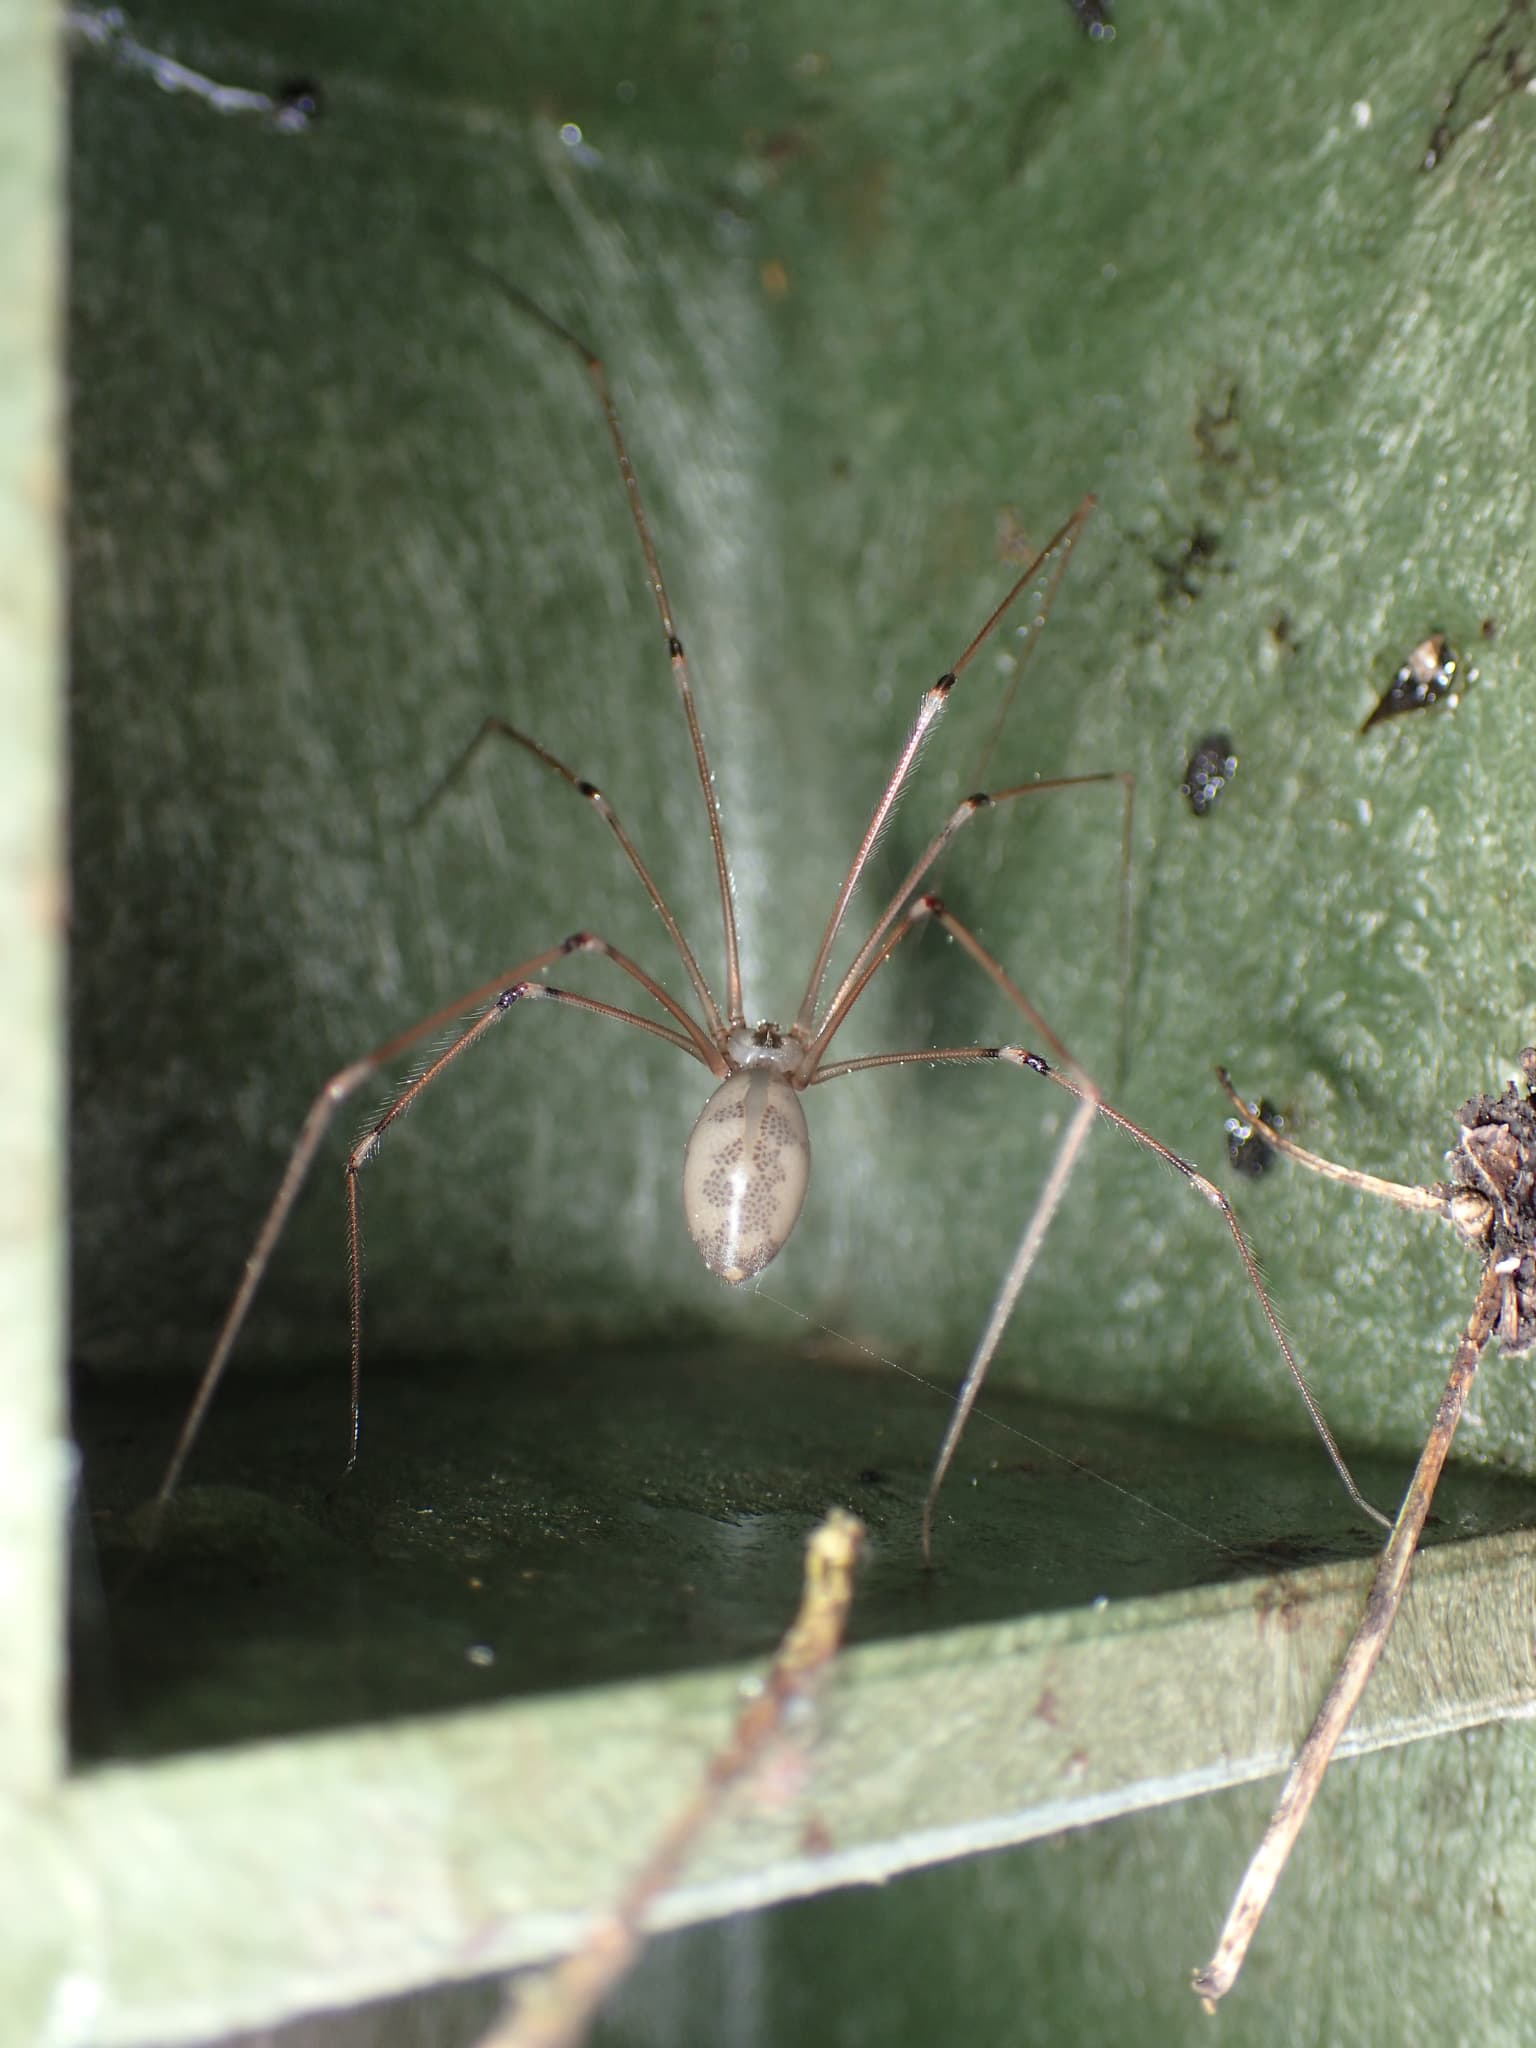 Picture of Pholcus phalangioides (Long-bodied Cellar Spider) - Female - Dorsal,Gravid